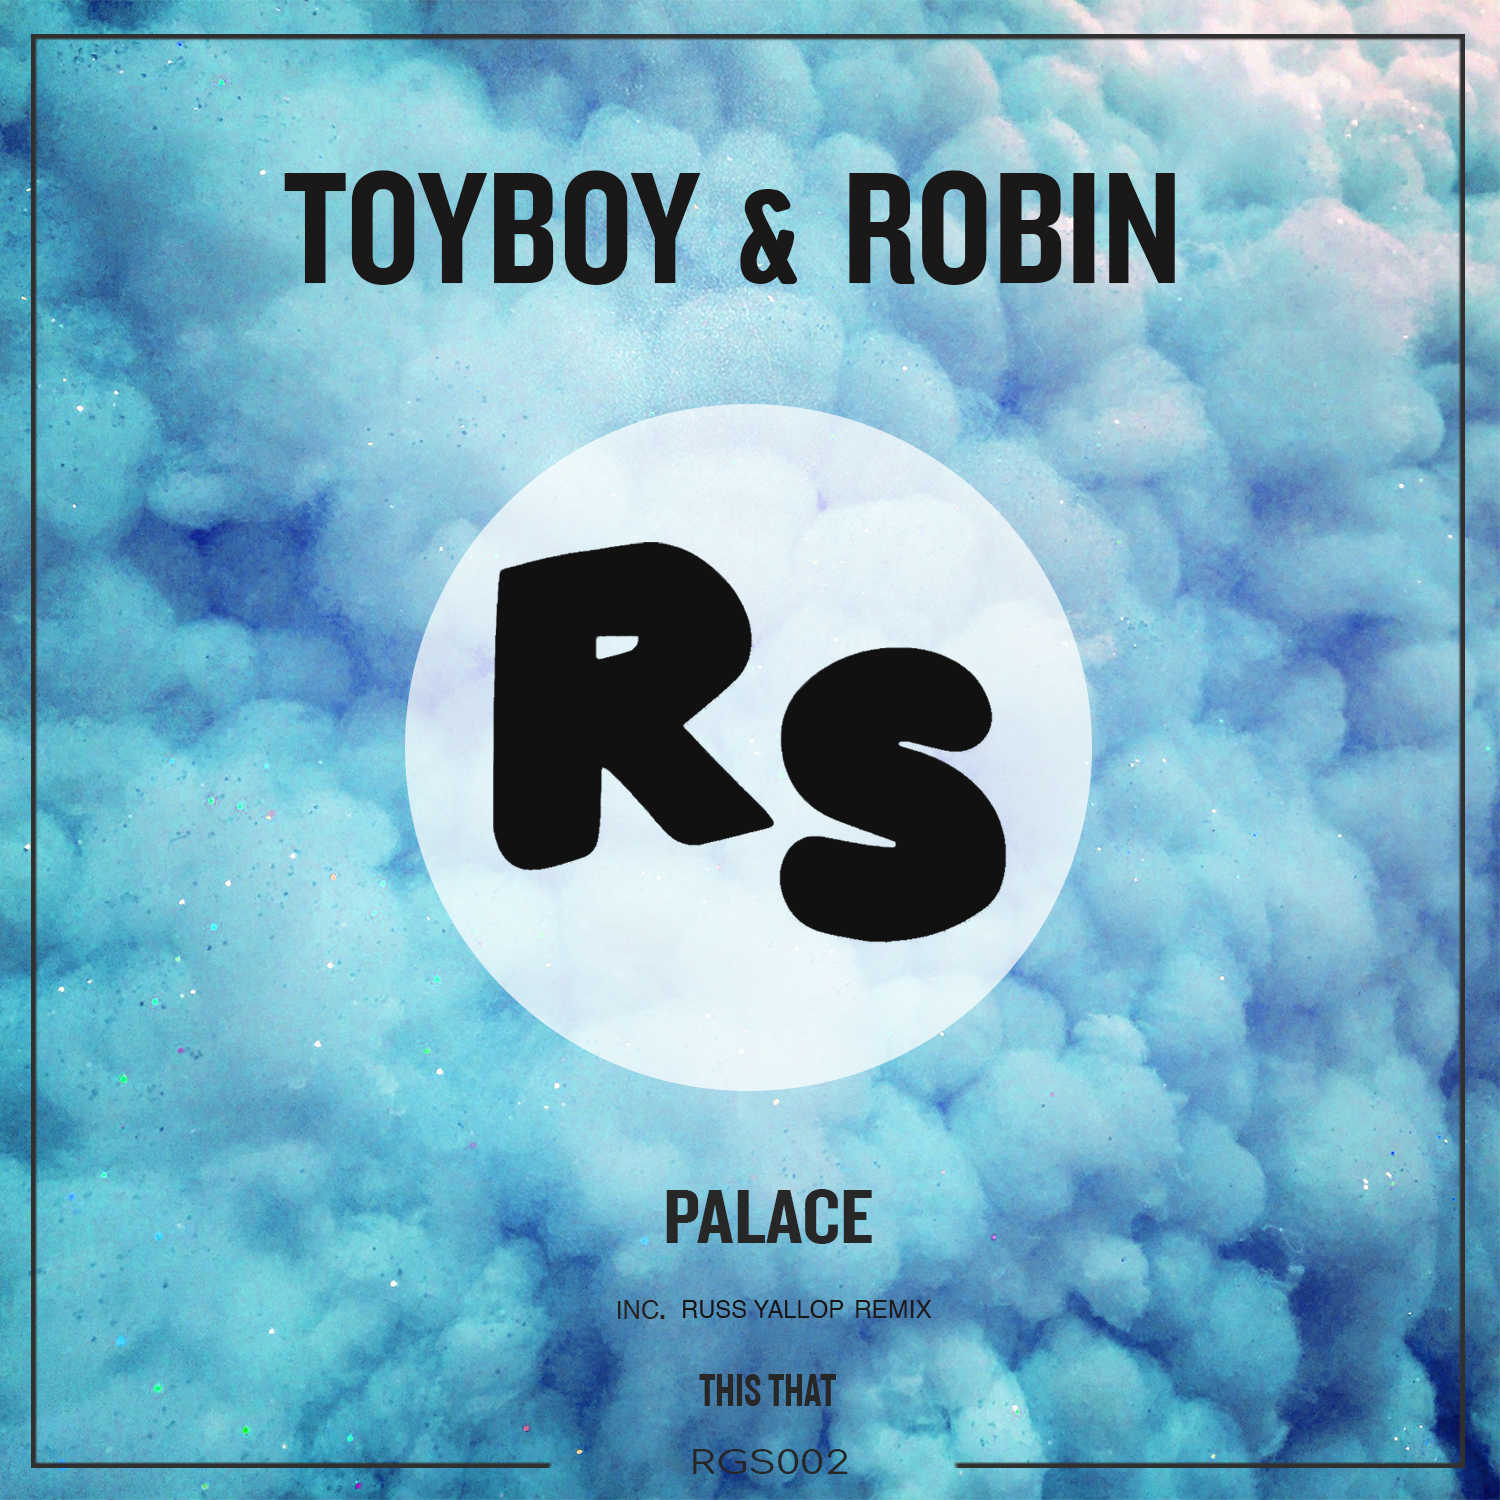 Toyboy & Robin – Palace (Russ Yallop Remix)(Regression Sessions)